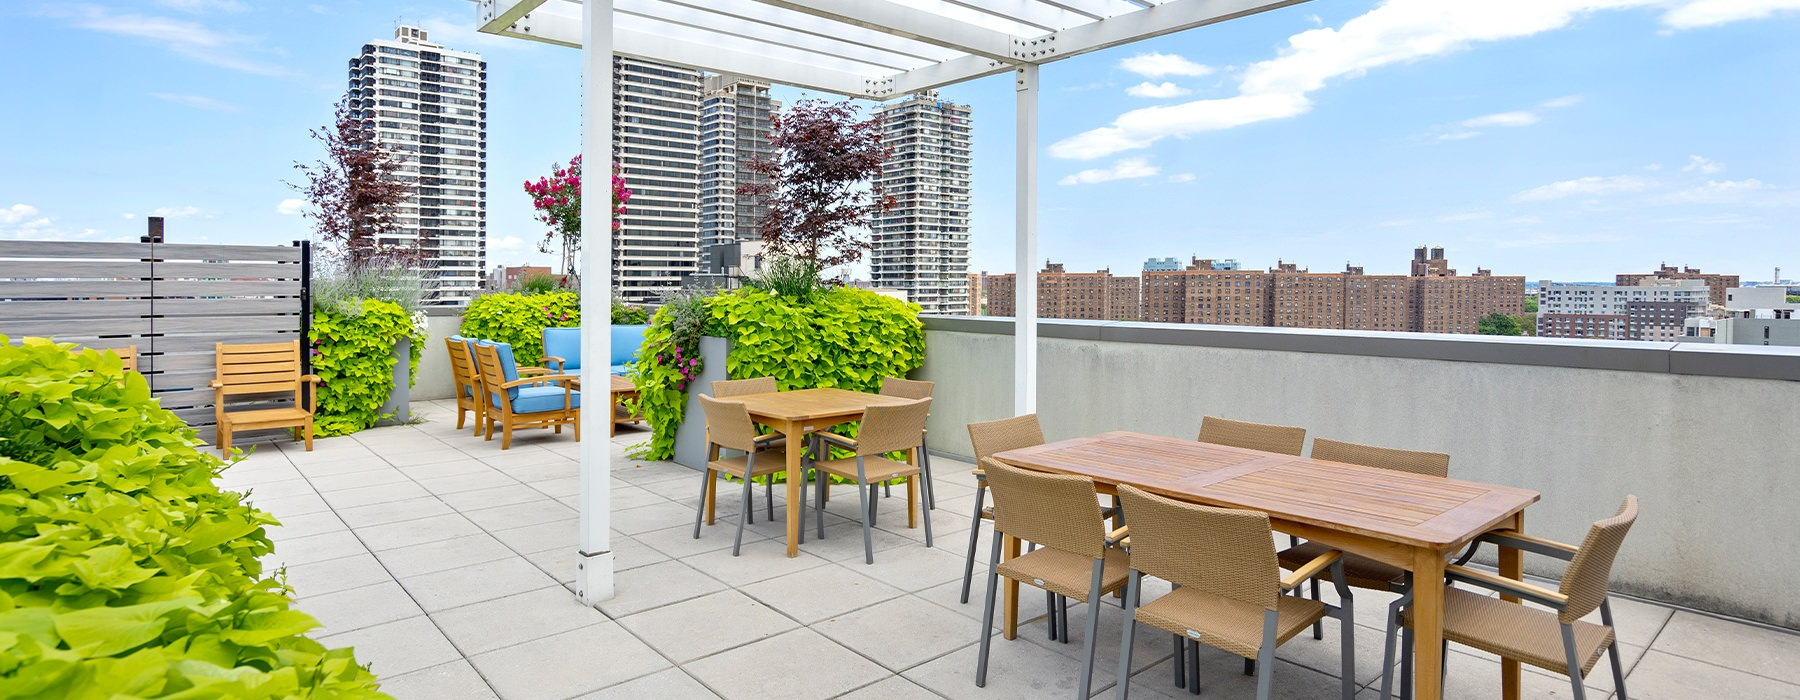 Rooftop Terrace with a view of The City